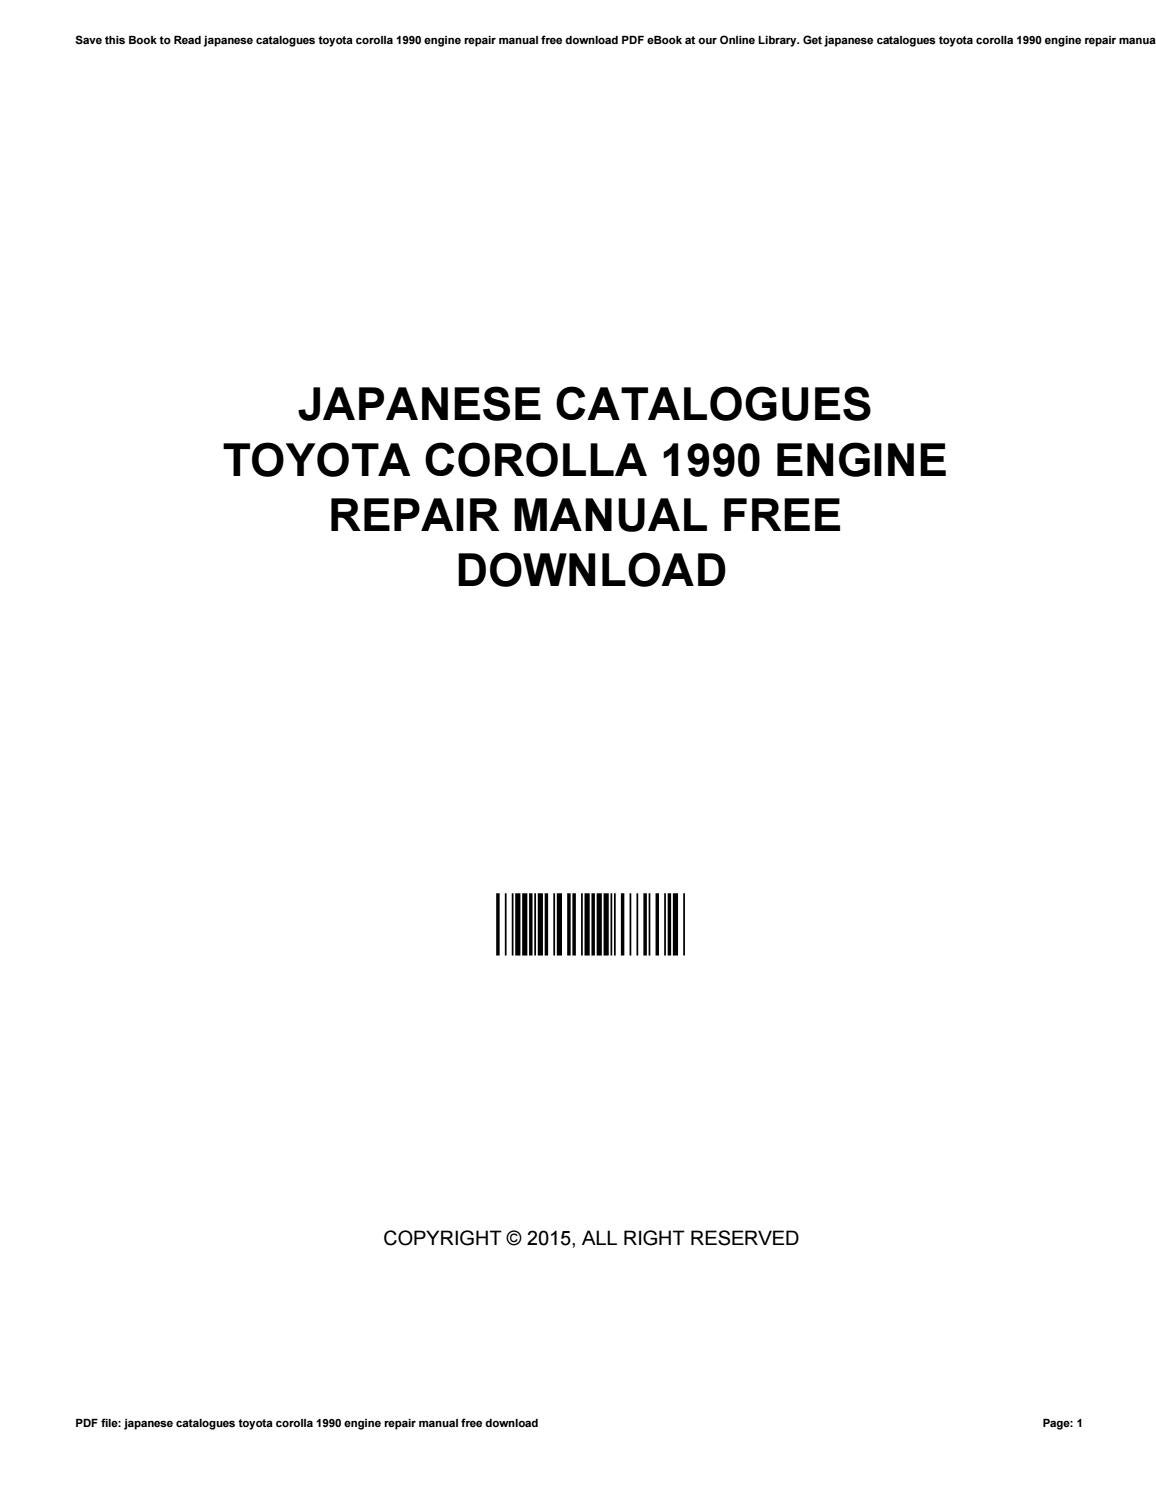 Japanese Catalogues Toyota Corolla 1990 Engine Repair Manual Free Download By Lee Issuu